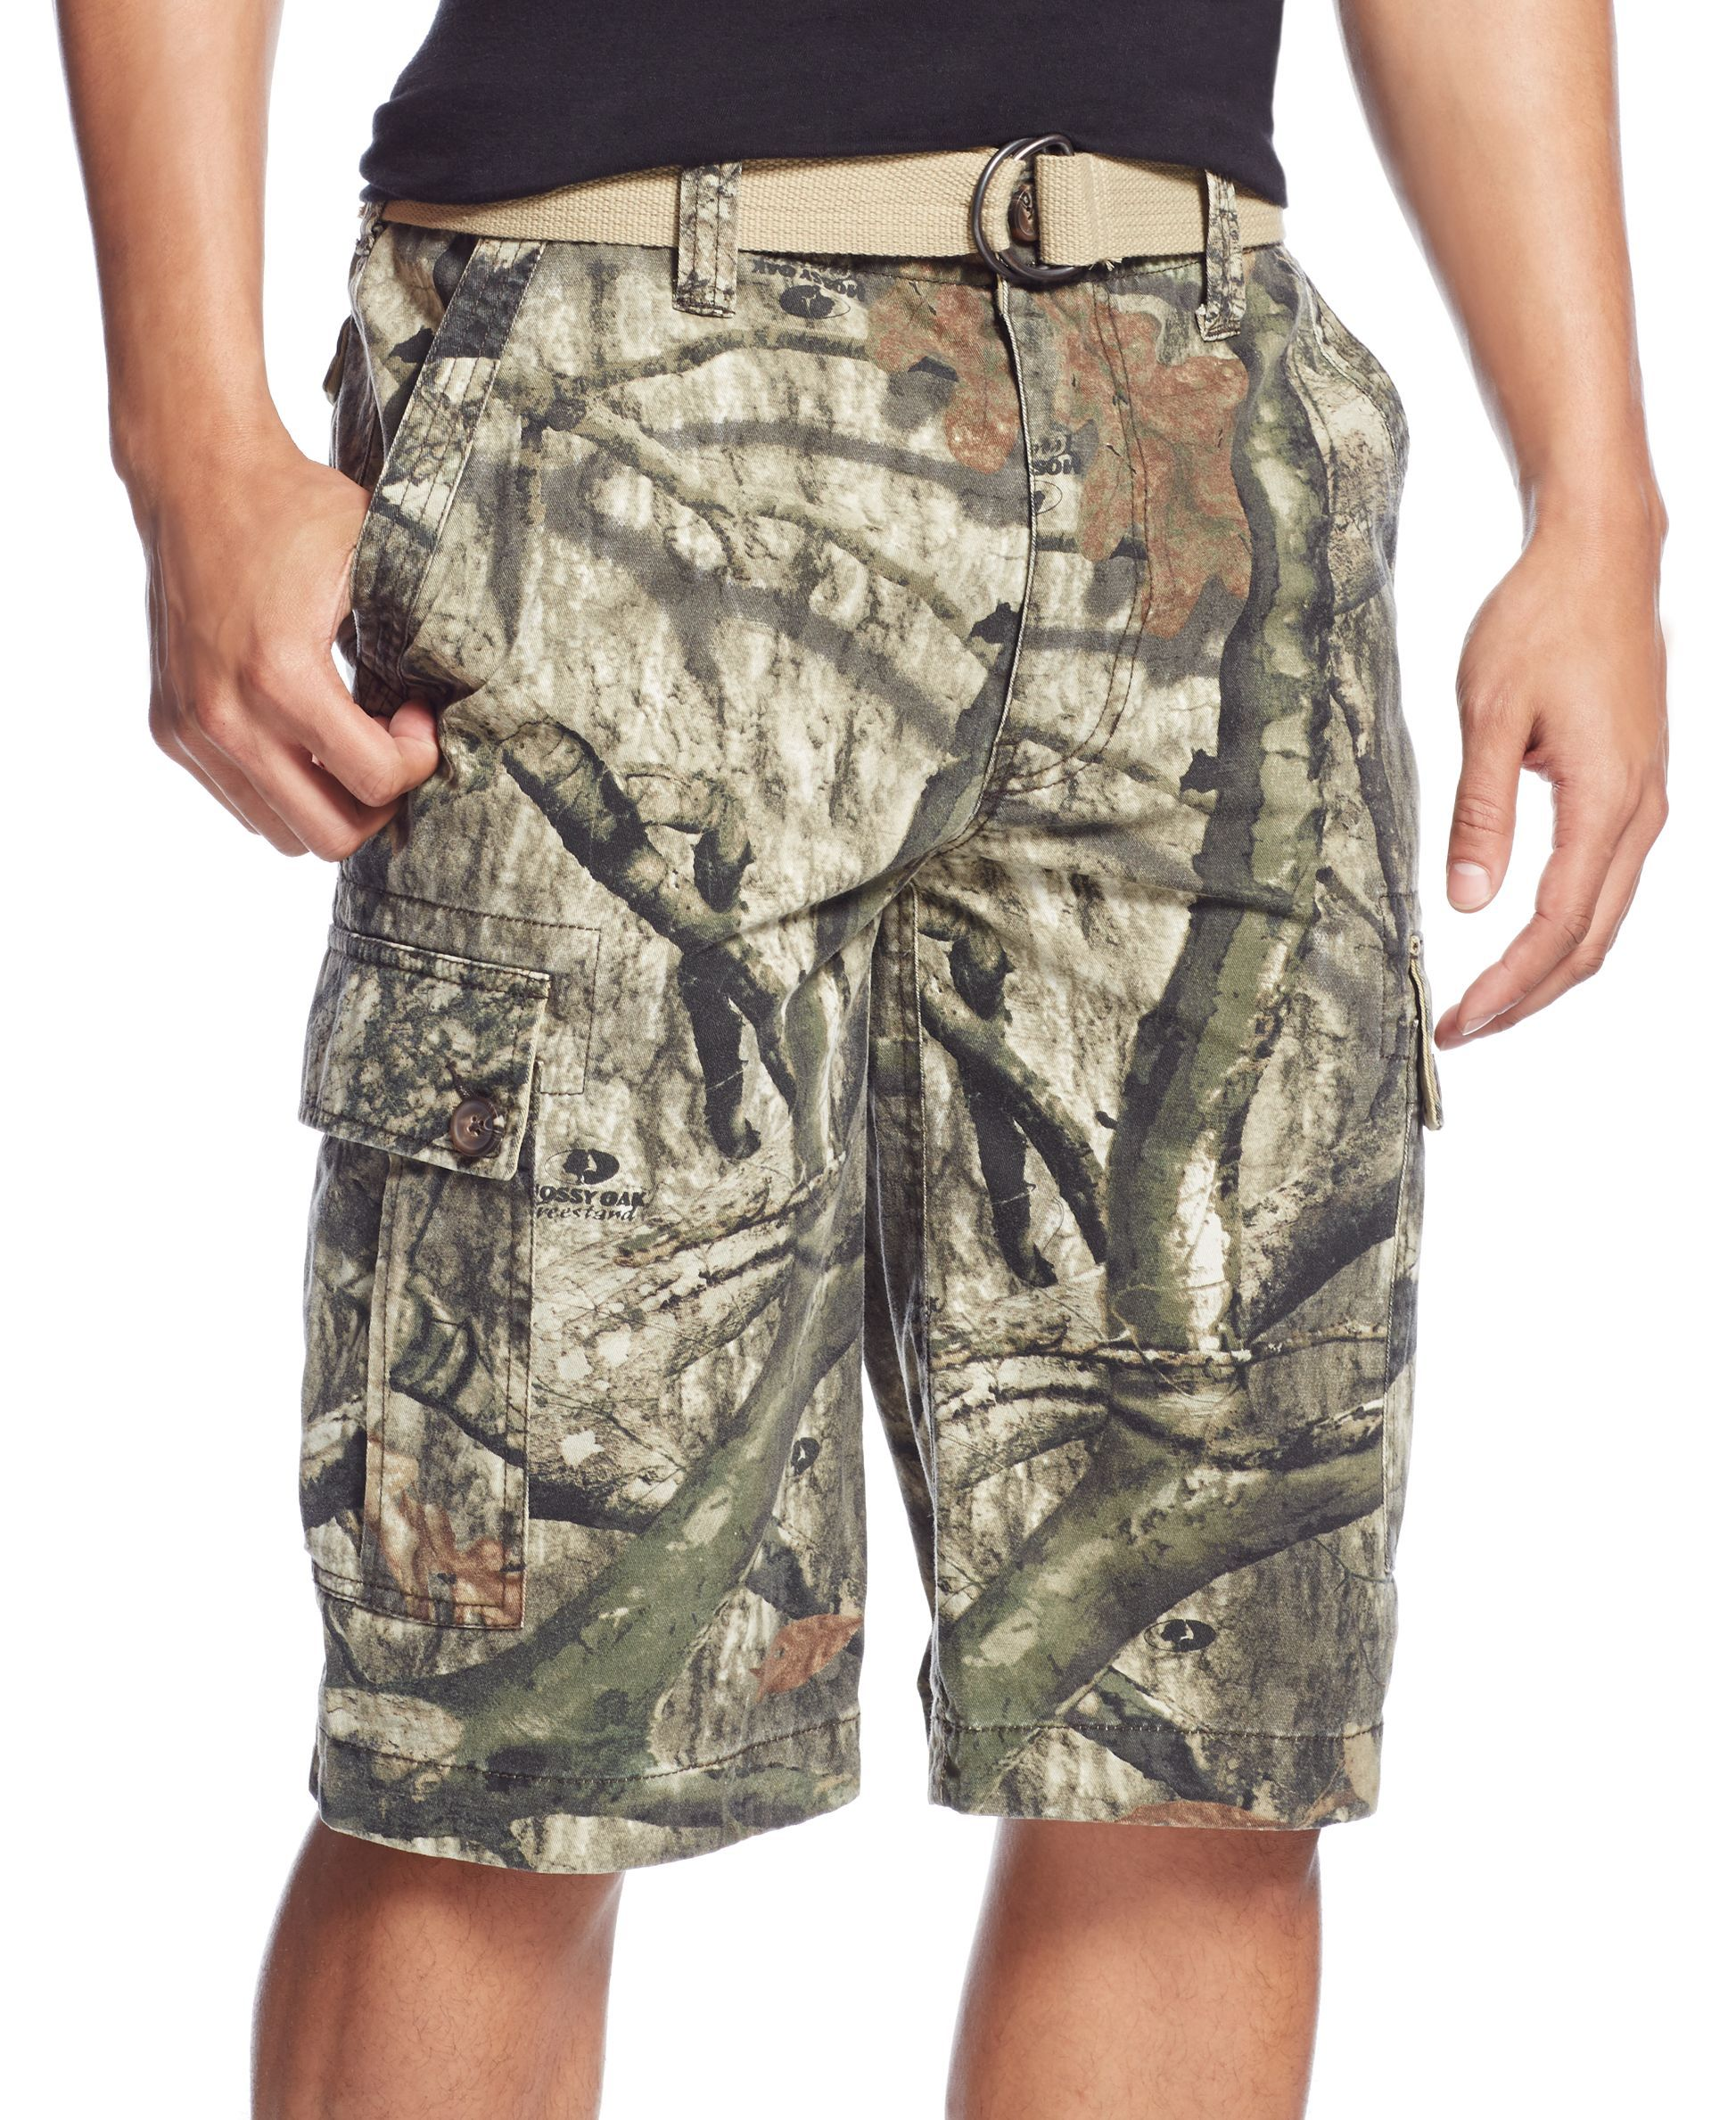 9078f85a77 Mossy Oak by Wear First Belted Tree-Camo Cargo Shorts | Clothes ...